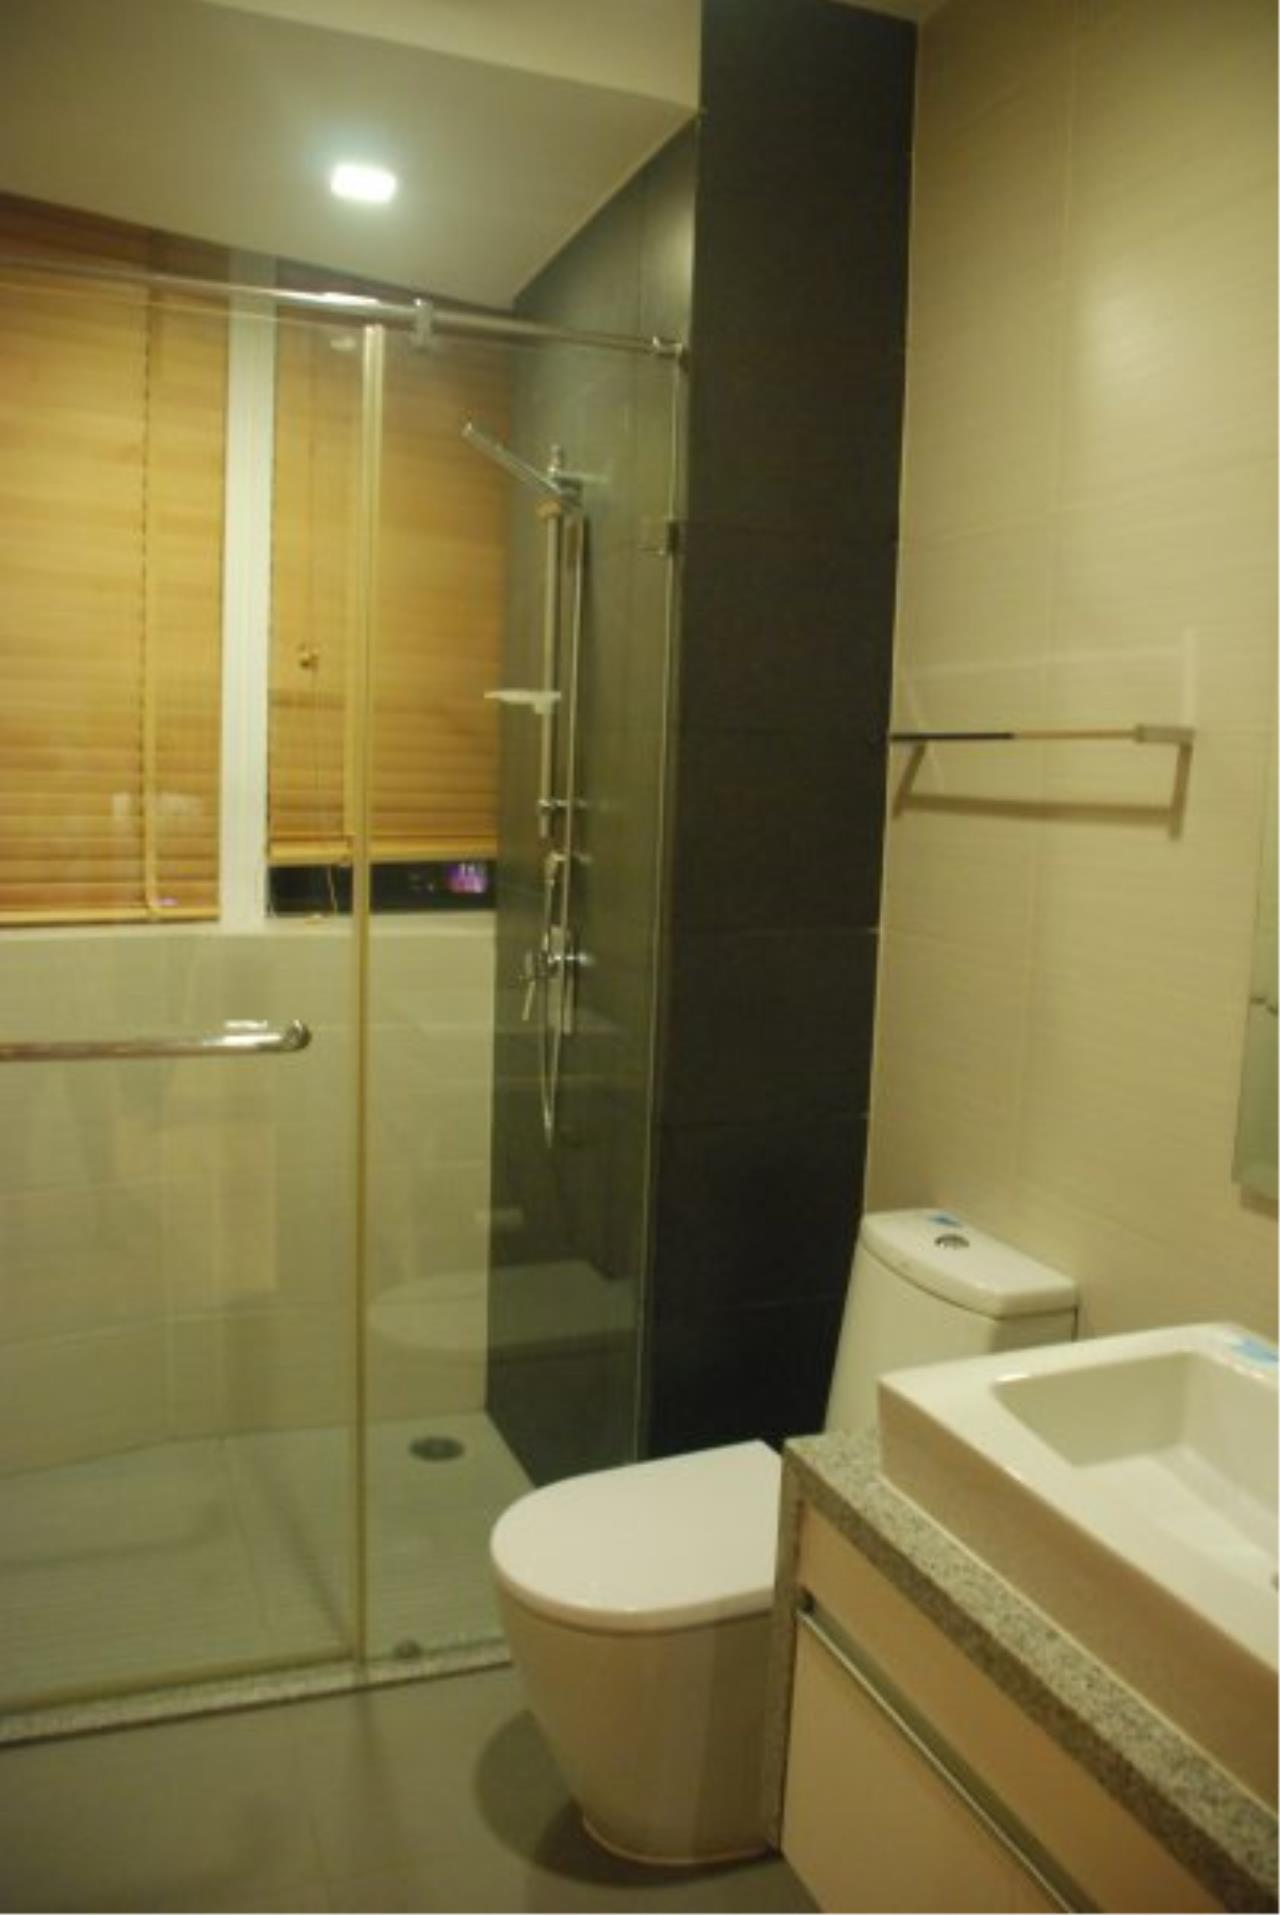 Piri Property Agency's Spacious 2 Bedrooms in the Millennium Residence for rent on high floor 12